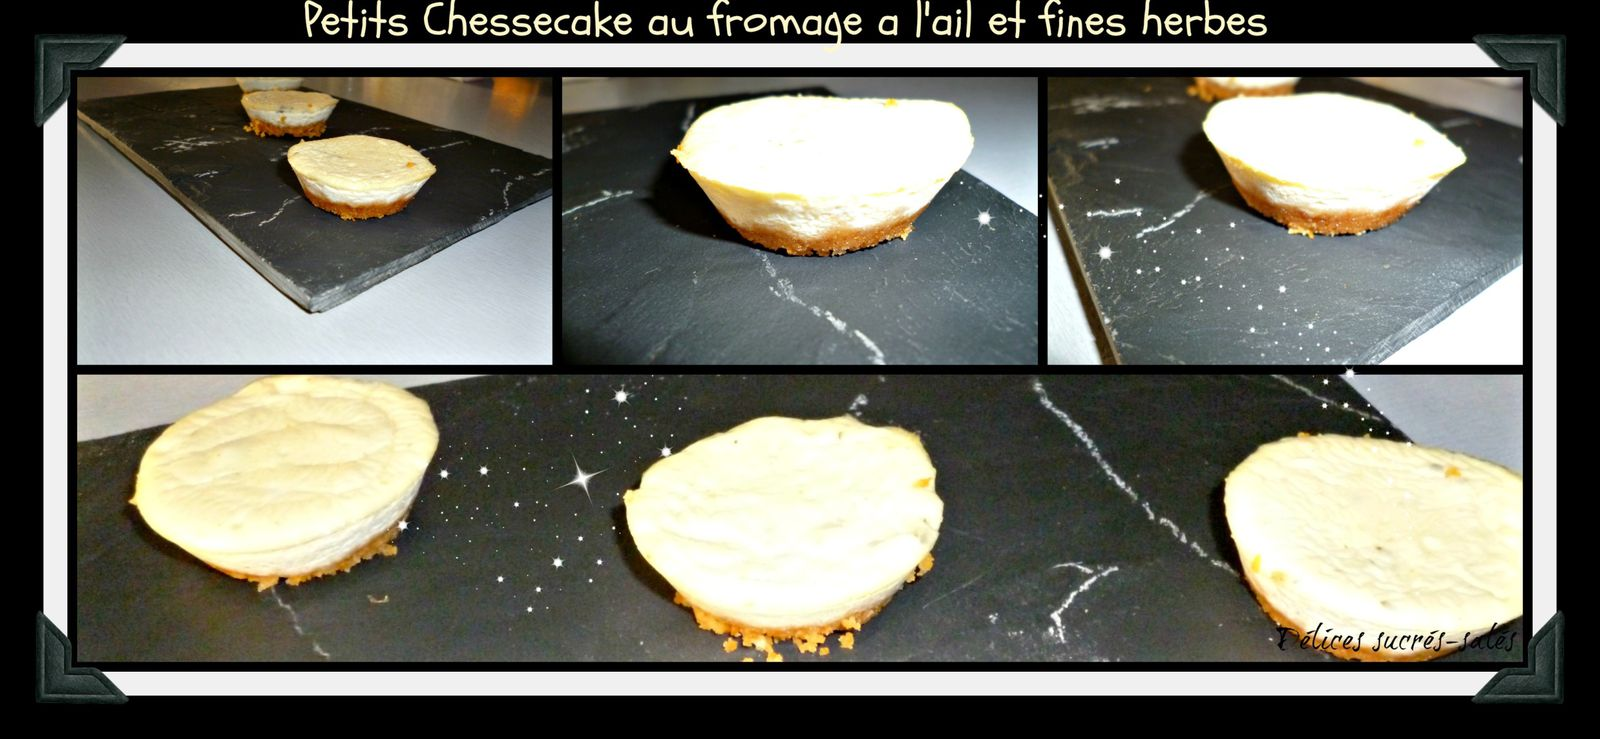 Cheesecake au fromage a l'ail et fines herbes